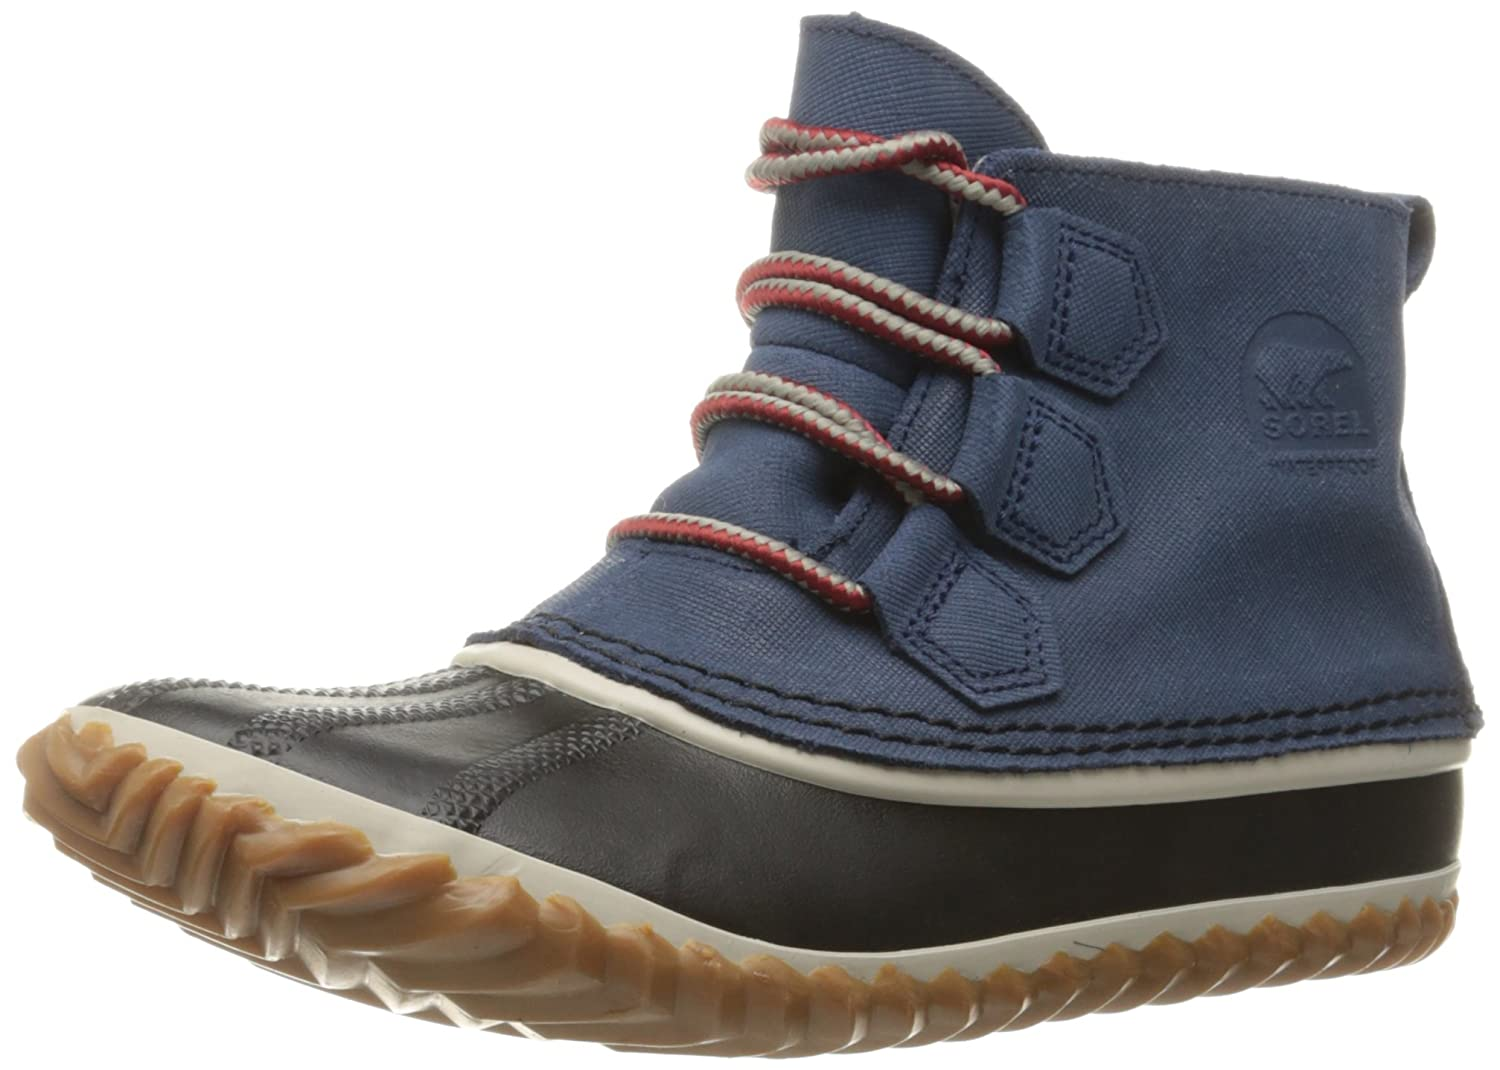 Sorel Women's Out N About Leather Rain Snow Boot OUT N ABOUT LEATHER-W